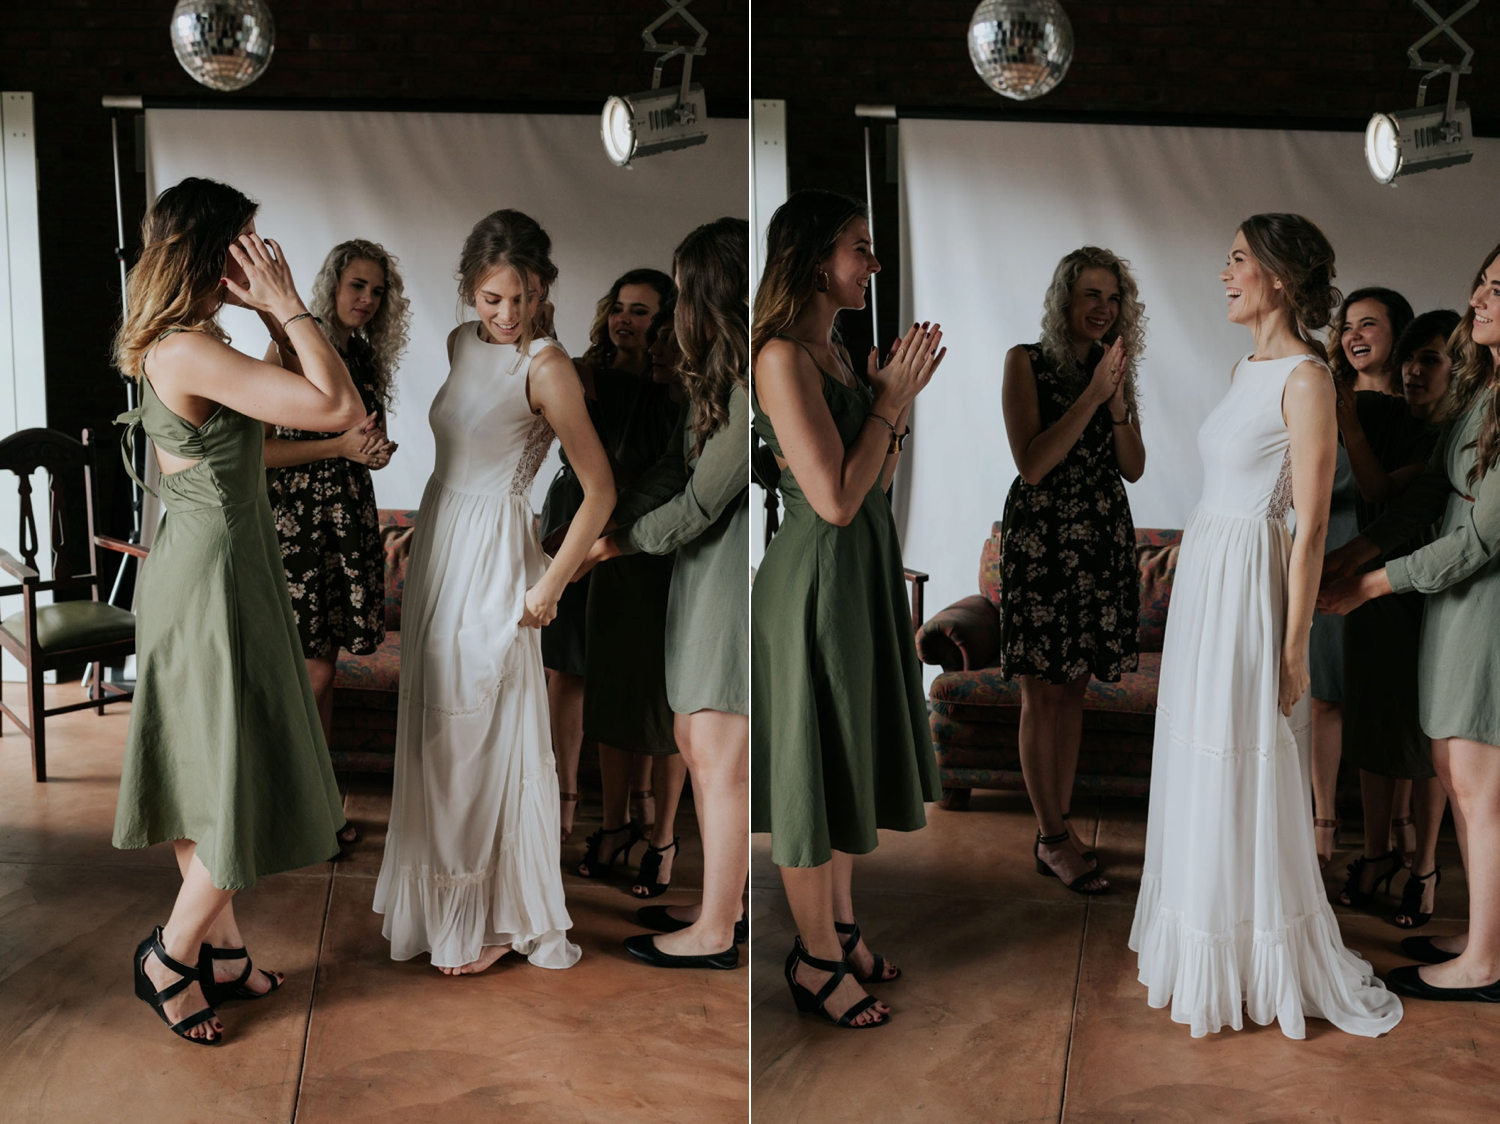 Bridesmaids Wearing Olive Green Dresses Help Bride Into Simple Classic Wedding Dress